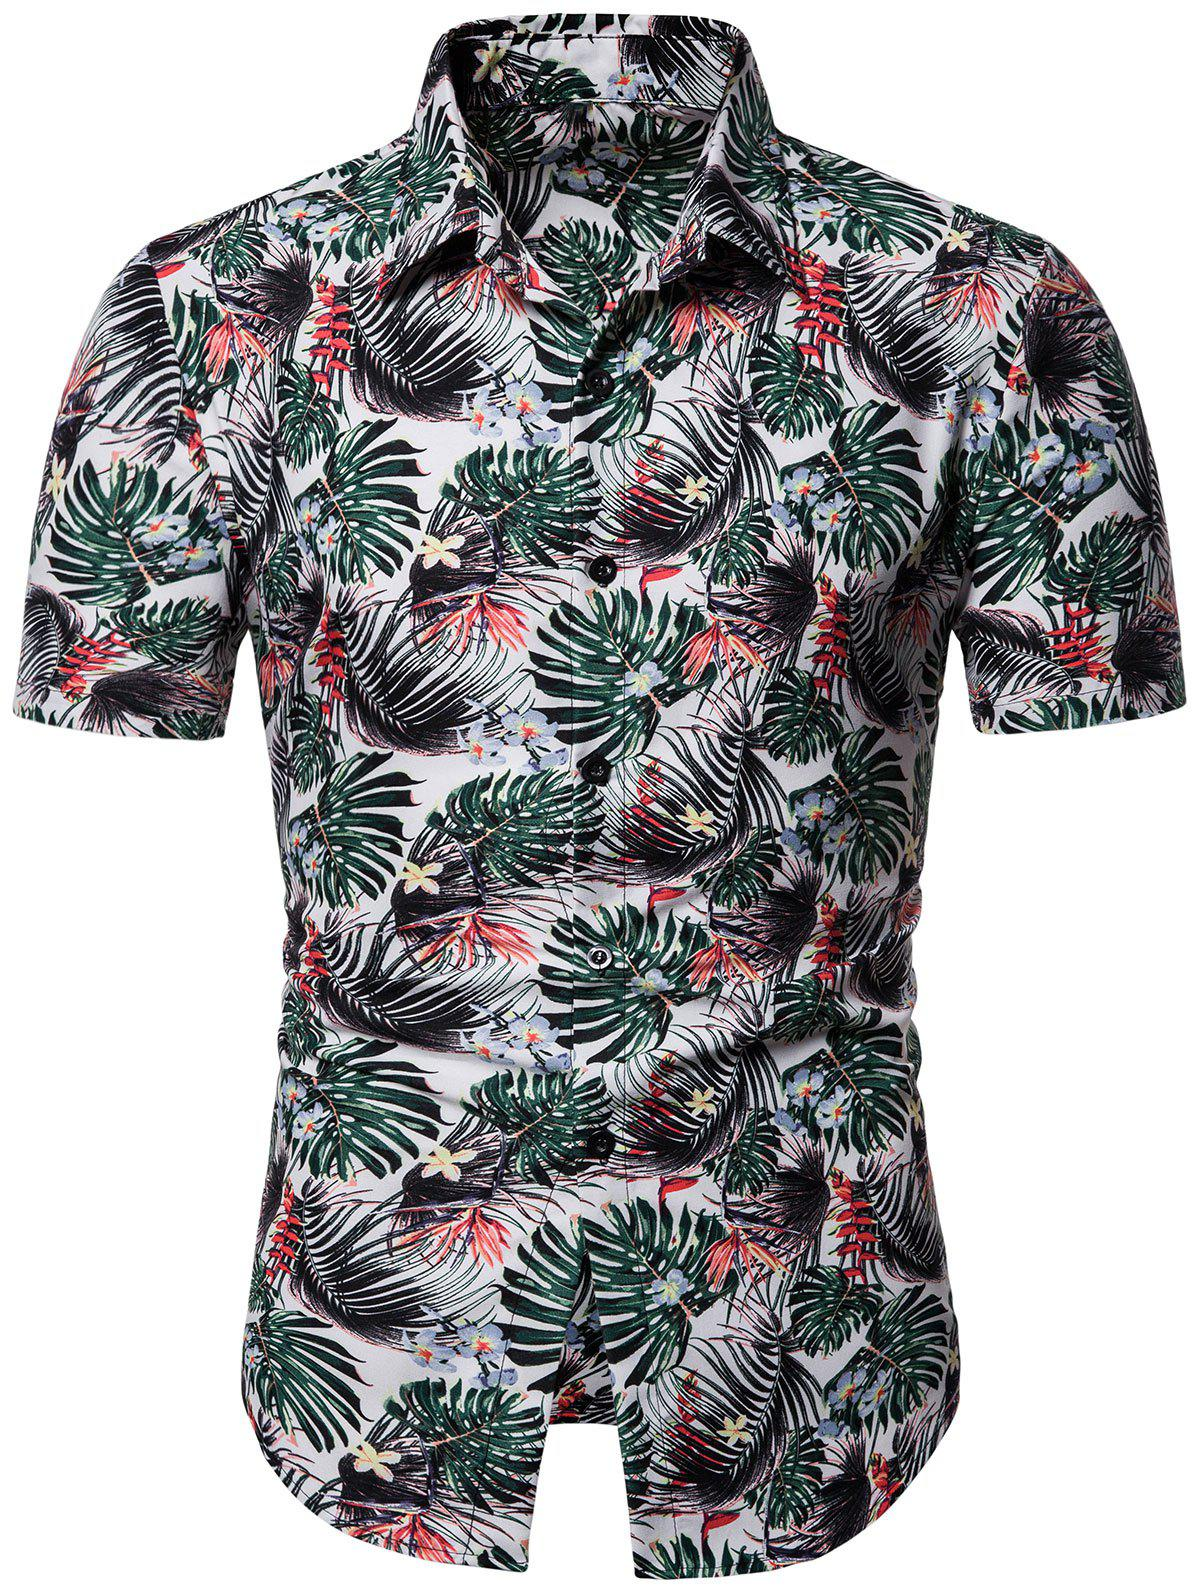 Online Plant Printed Short Sleeves Shirt